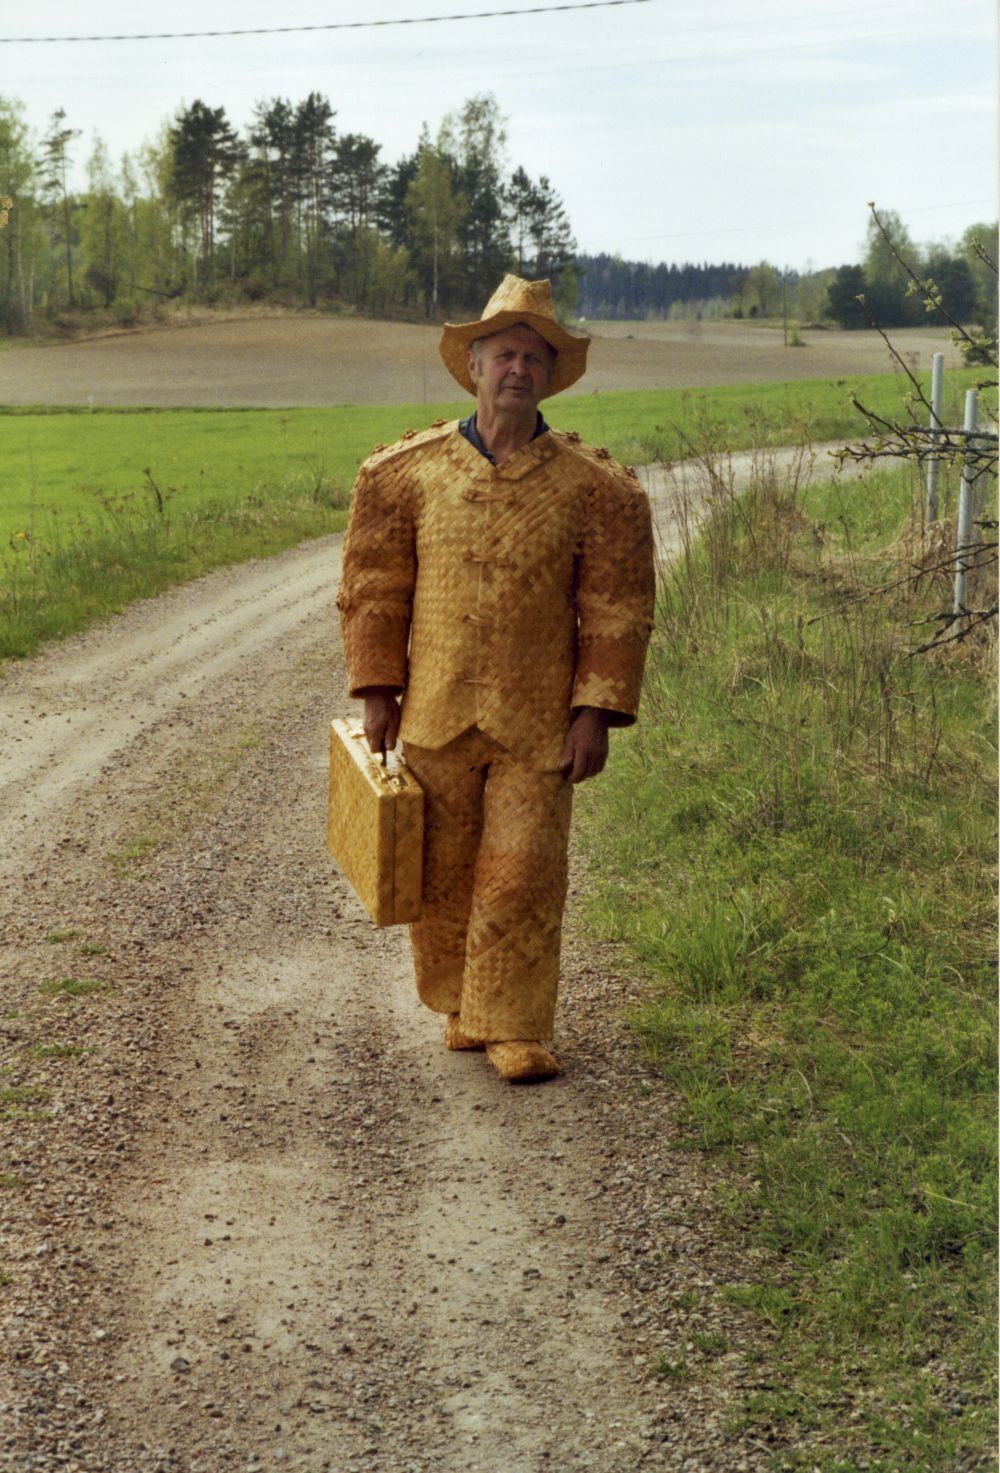 ErkkiPekkarinen_Artist wearing woven birch bark suit